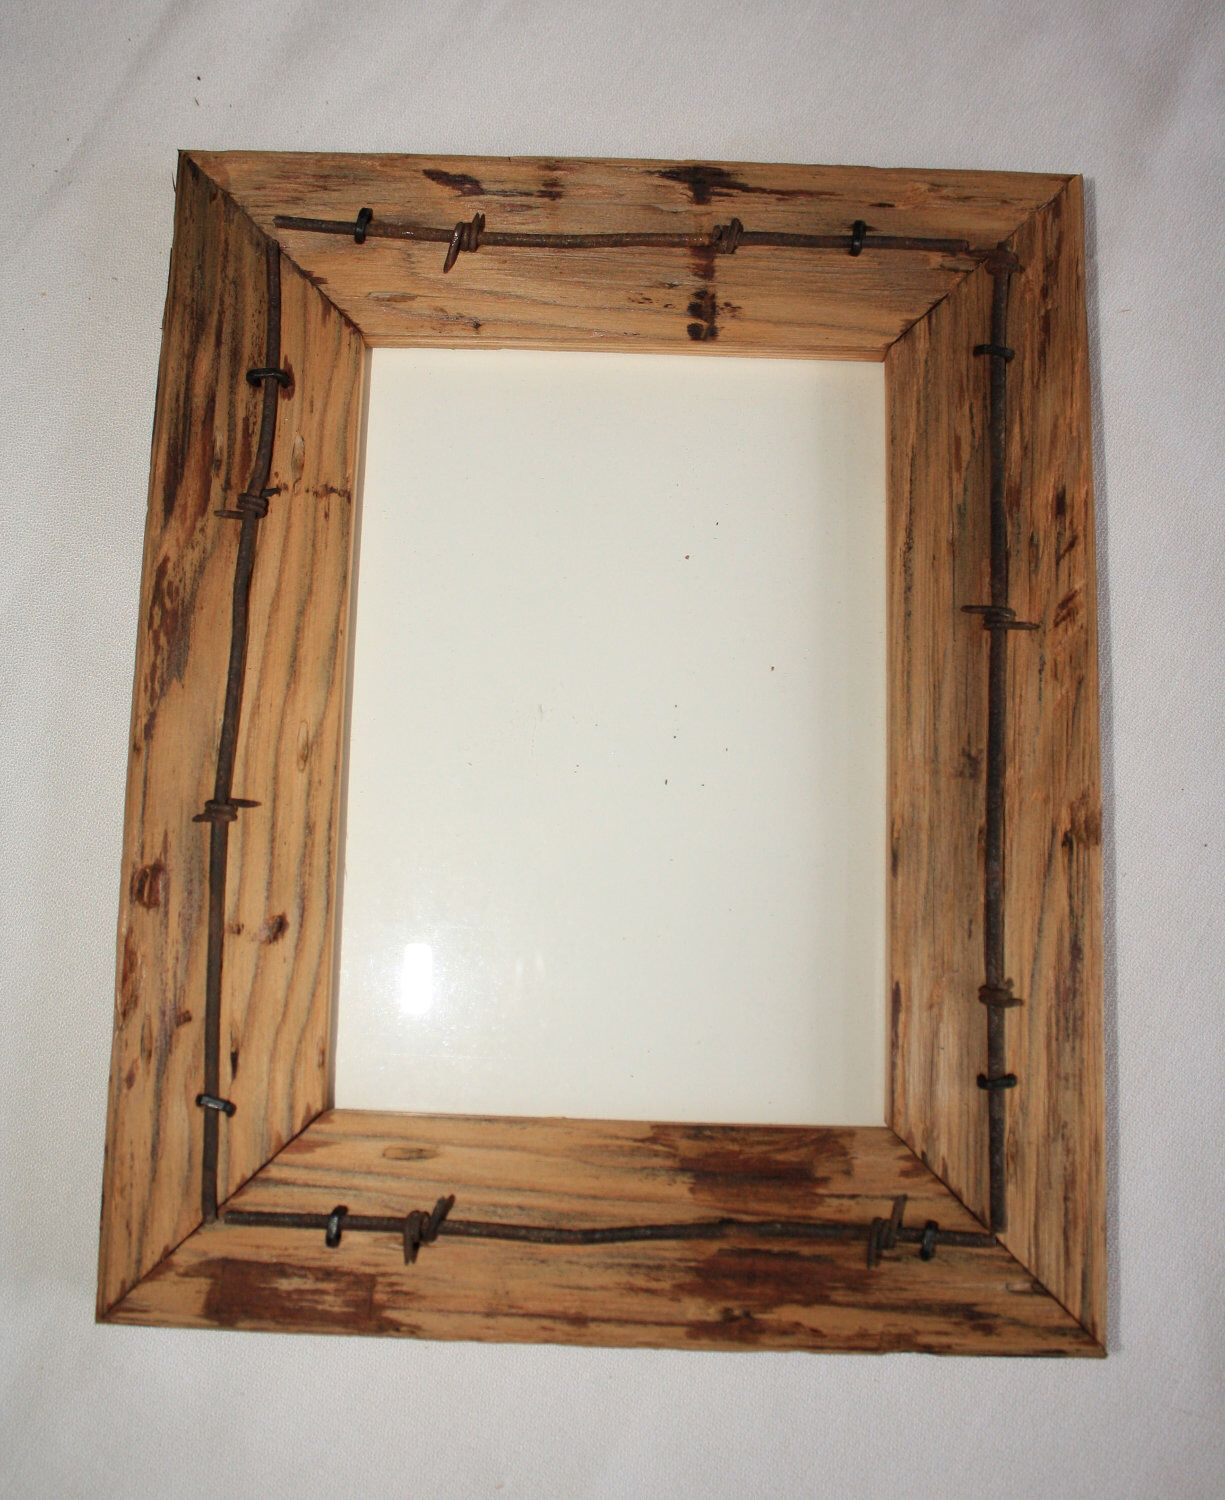 Reclaimed Wood Picture Frame - 5 x 7 - Vintage Telegraph Pole Cross ...